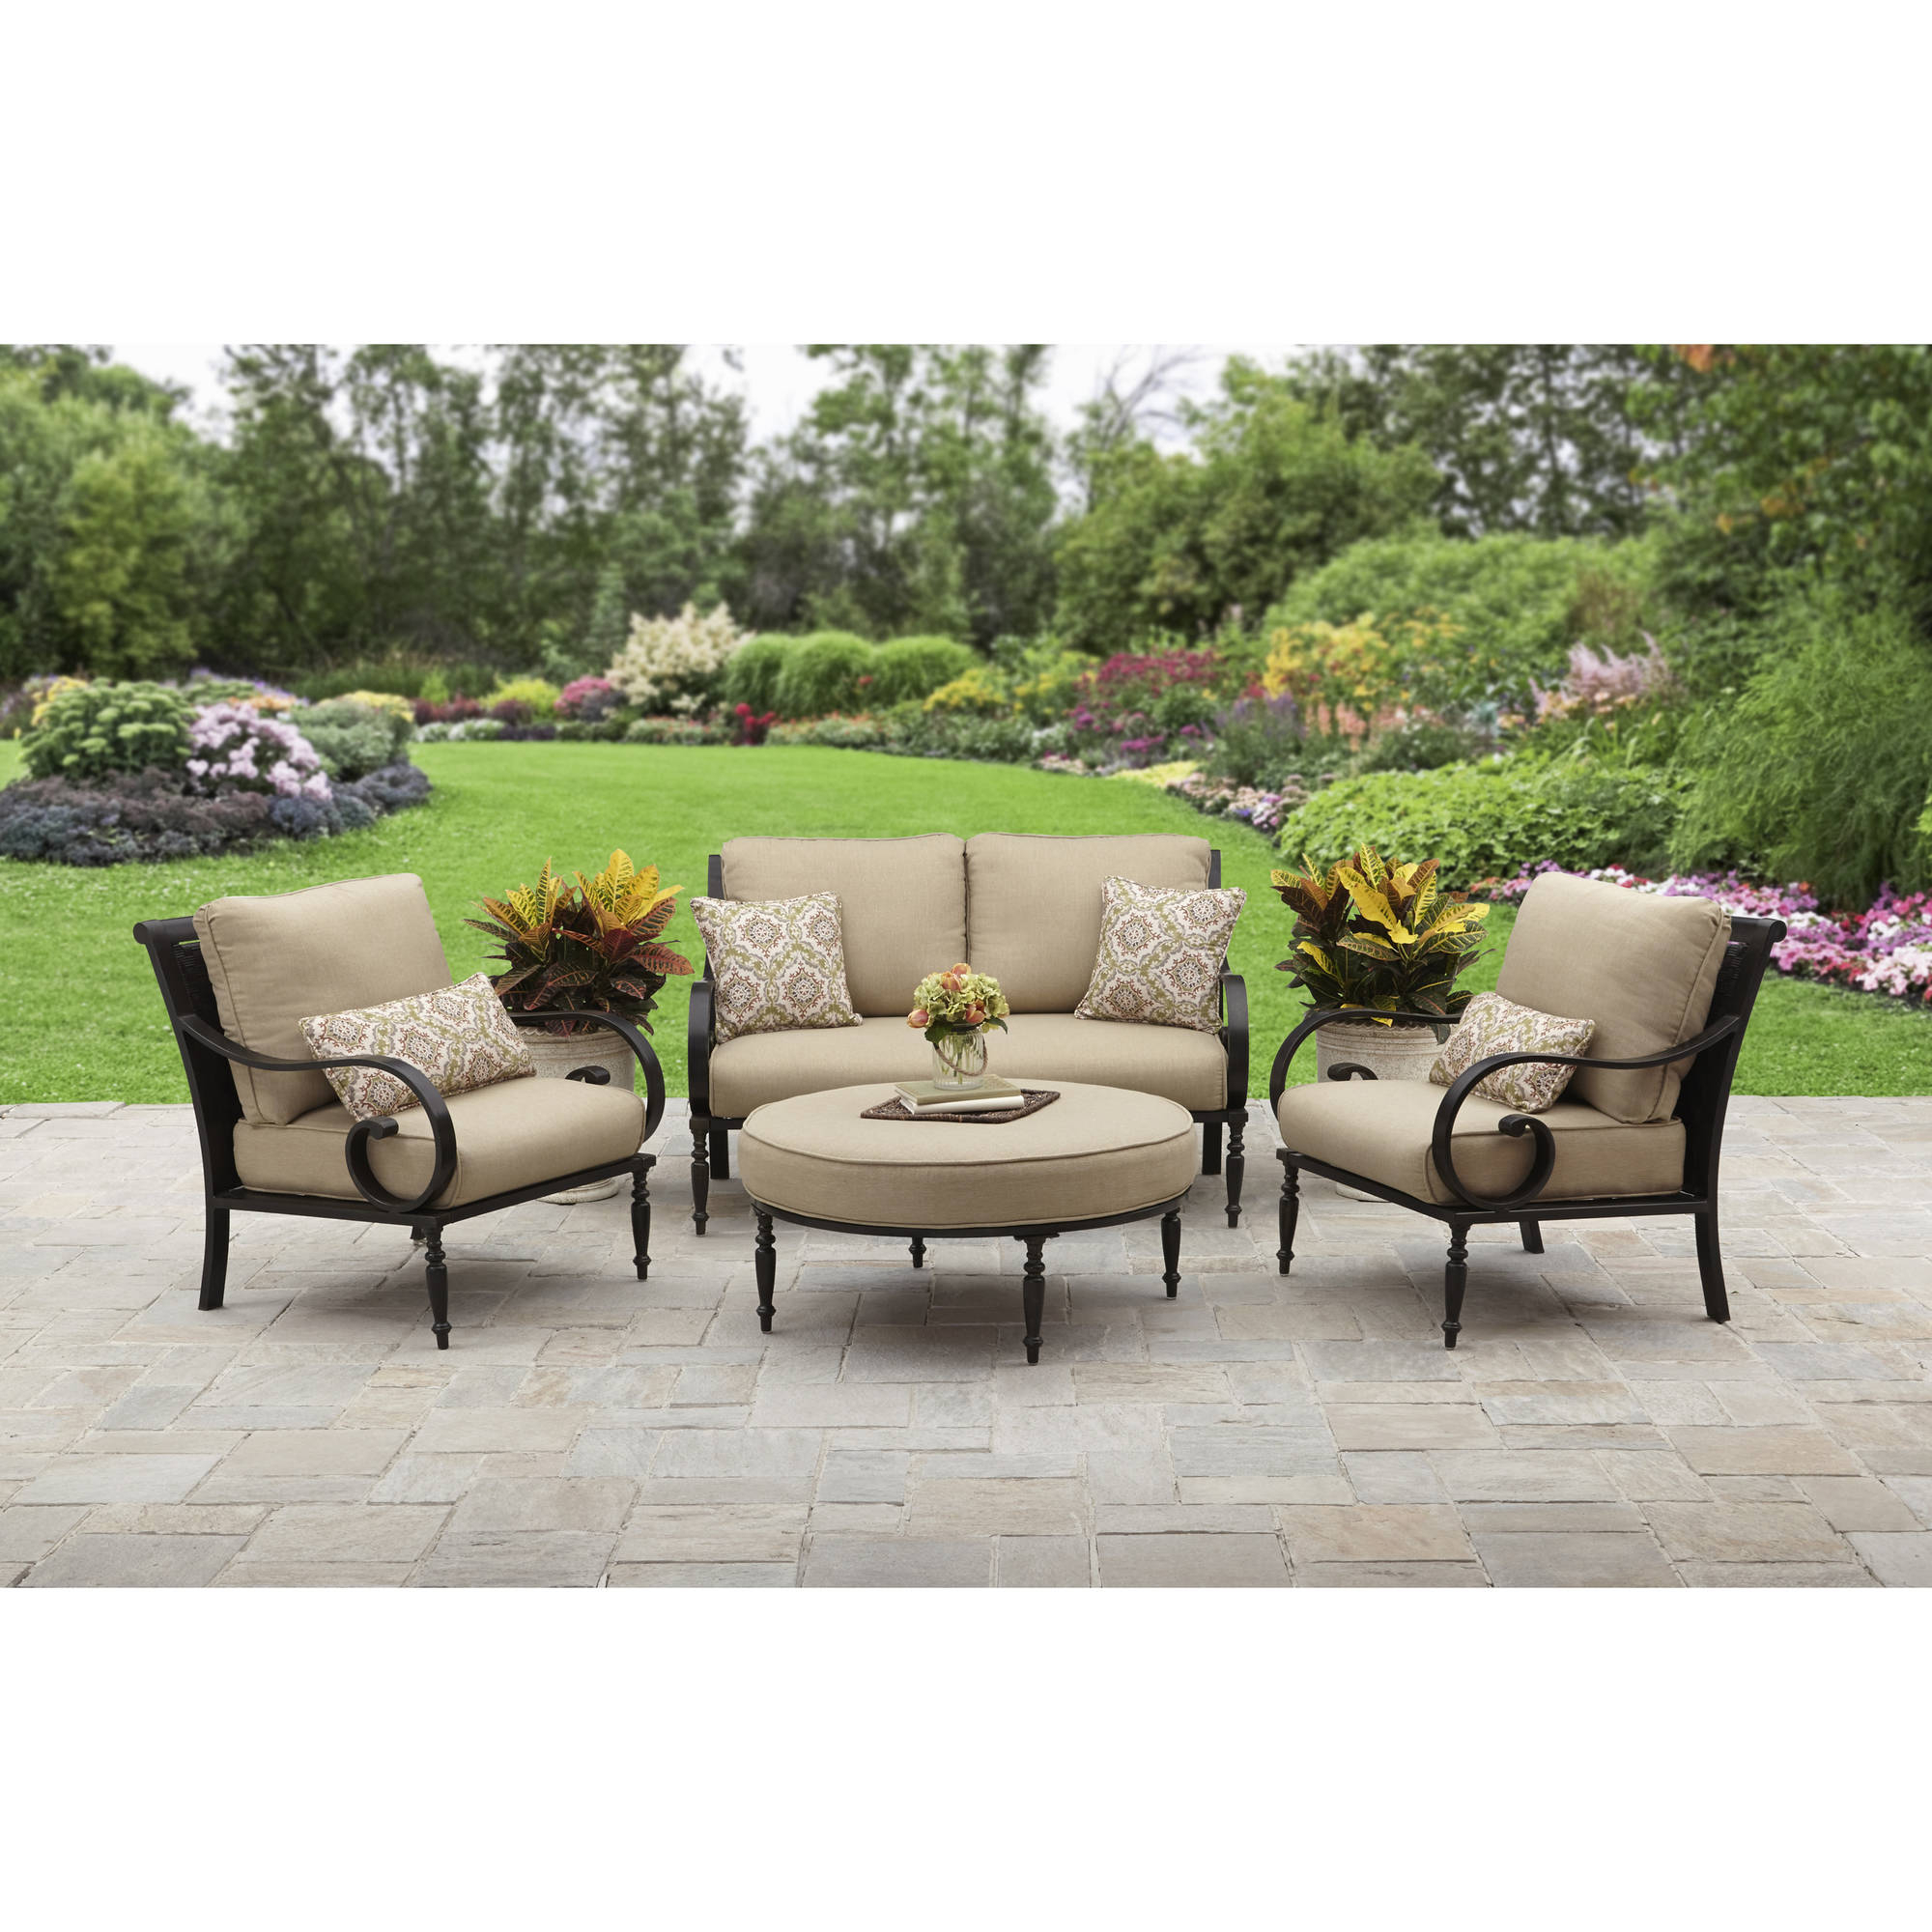 Englewood Loveseats With Cushions Intended For 2019 Better Homes And Gardens Englewood Heights Ii Aluminum 4 Piece Outdoor Patio Conversation Set, Seats (View 17 of 20)